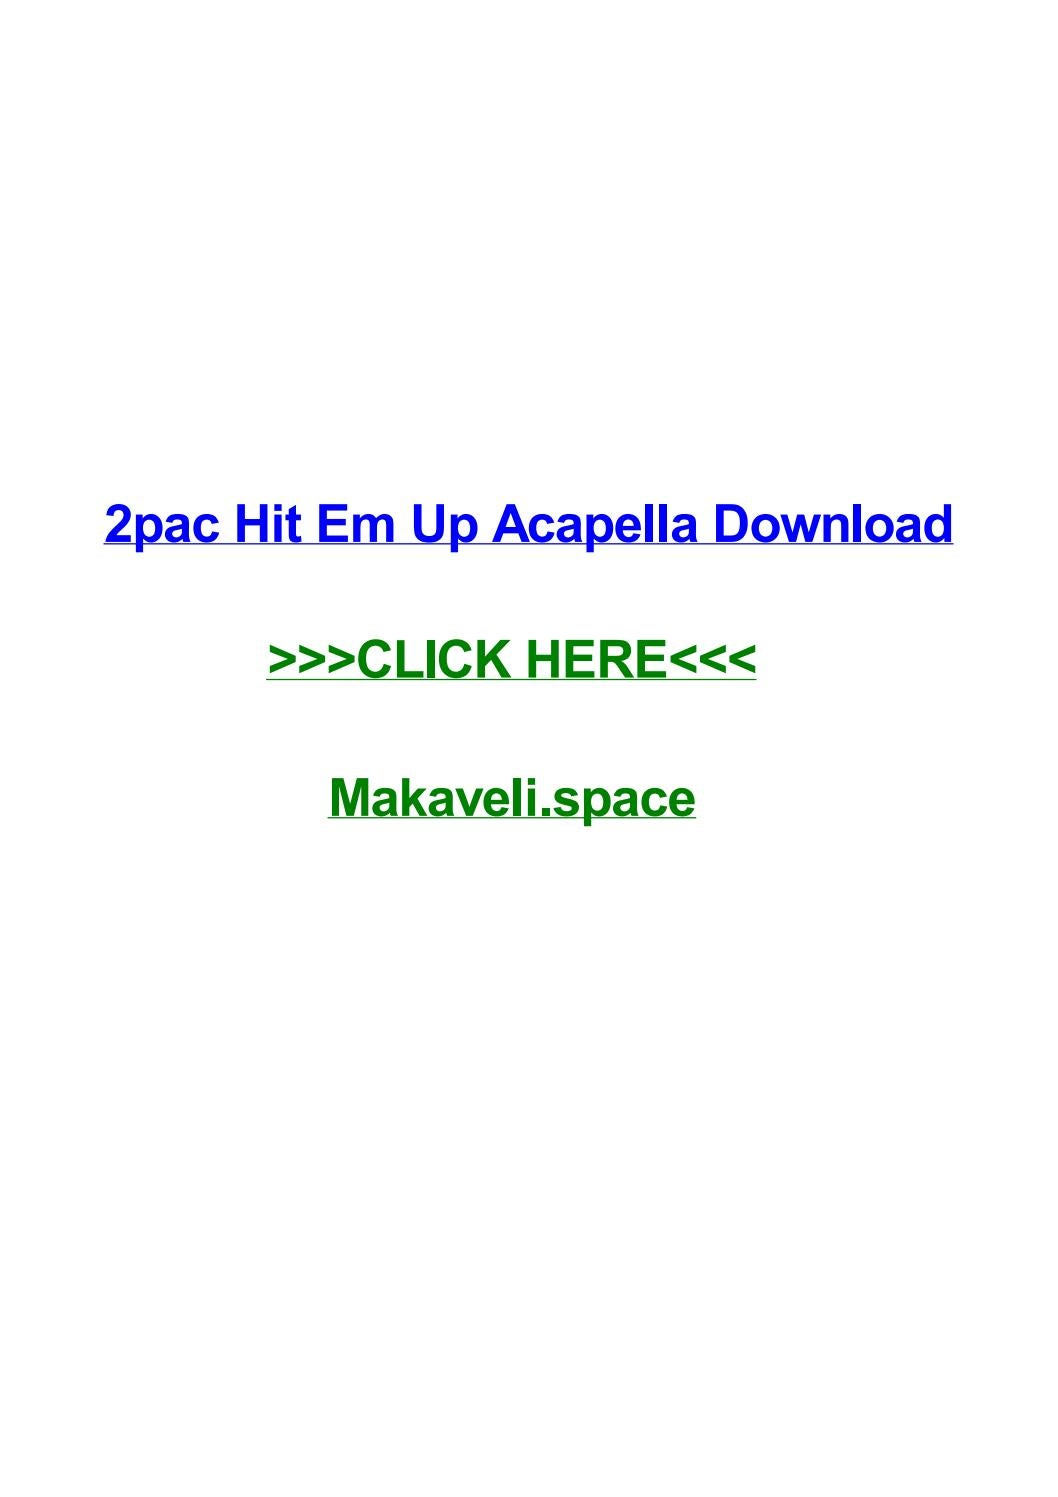 2pac hit em up acapella download by ericcwwbs - issuu